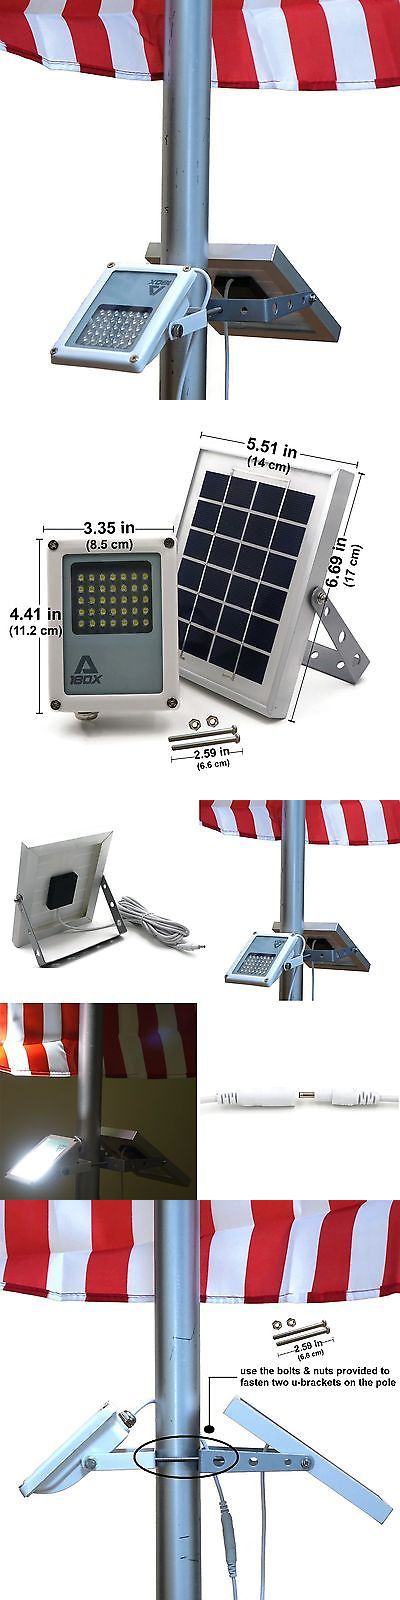 Flag Poles and Parts 43536: Alpha 180X Flag Pole Light For Solar Flagpole Lighting Cast Iron Street Lig... -> BUY IT NOW ONLY: $43.58 on eBay!